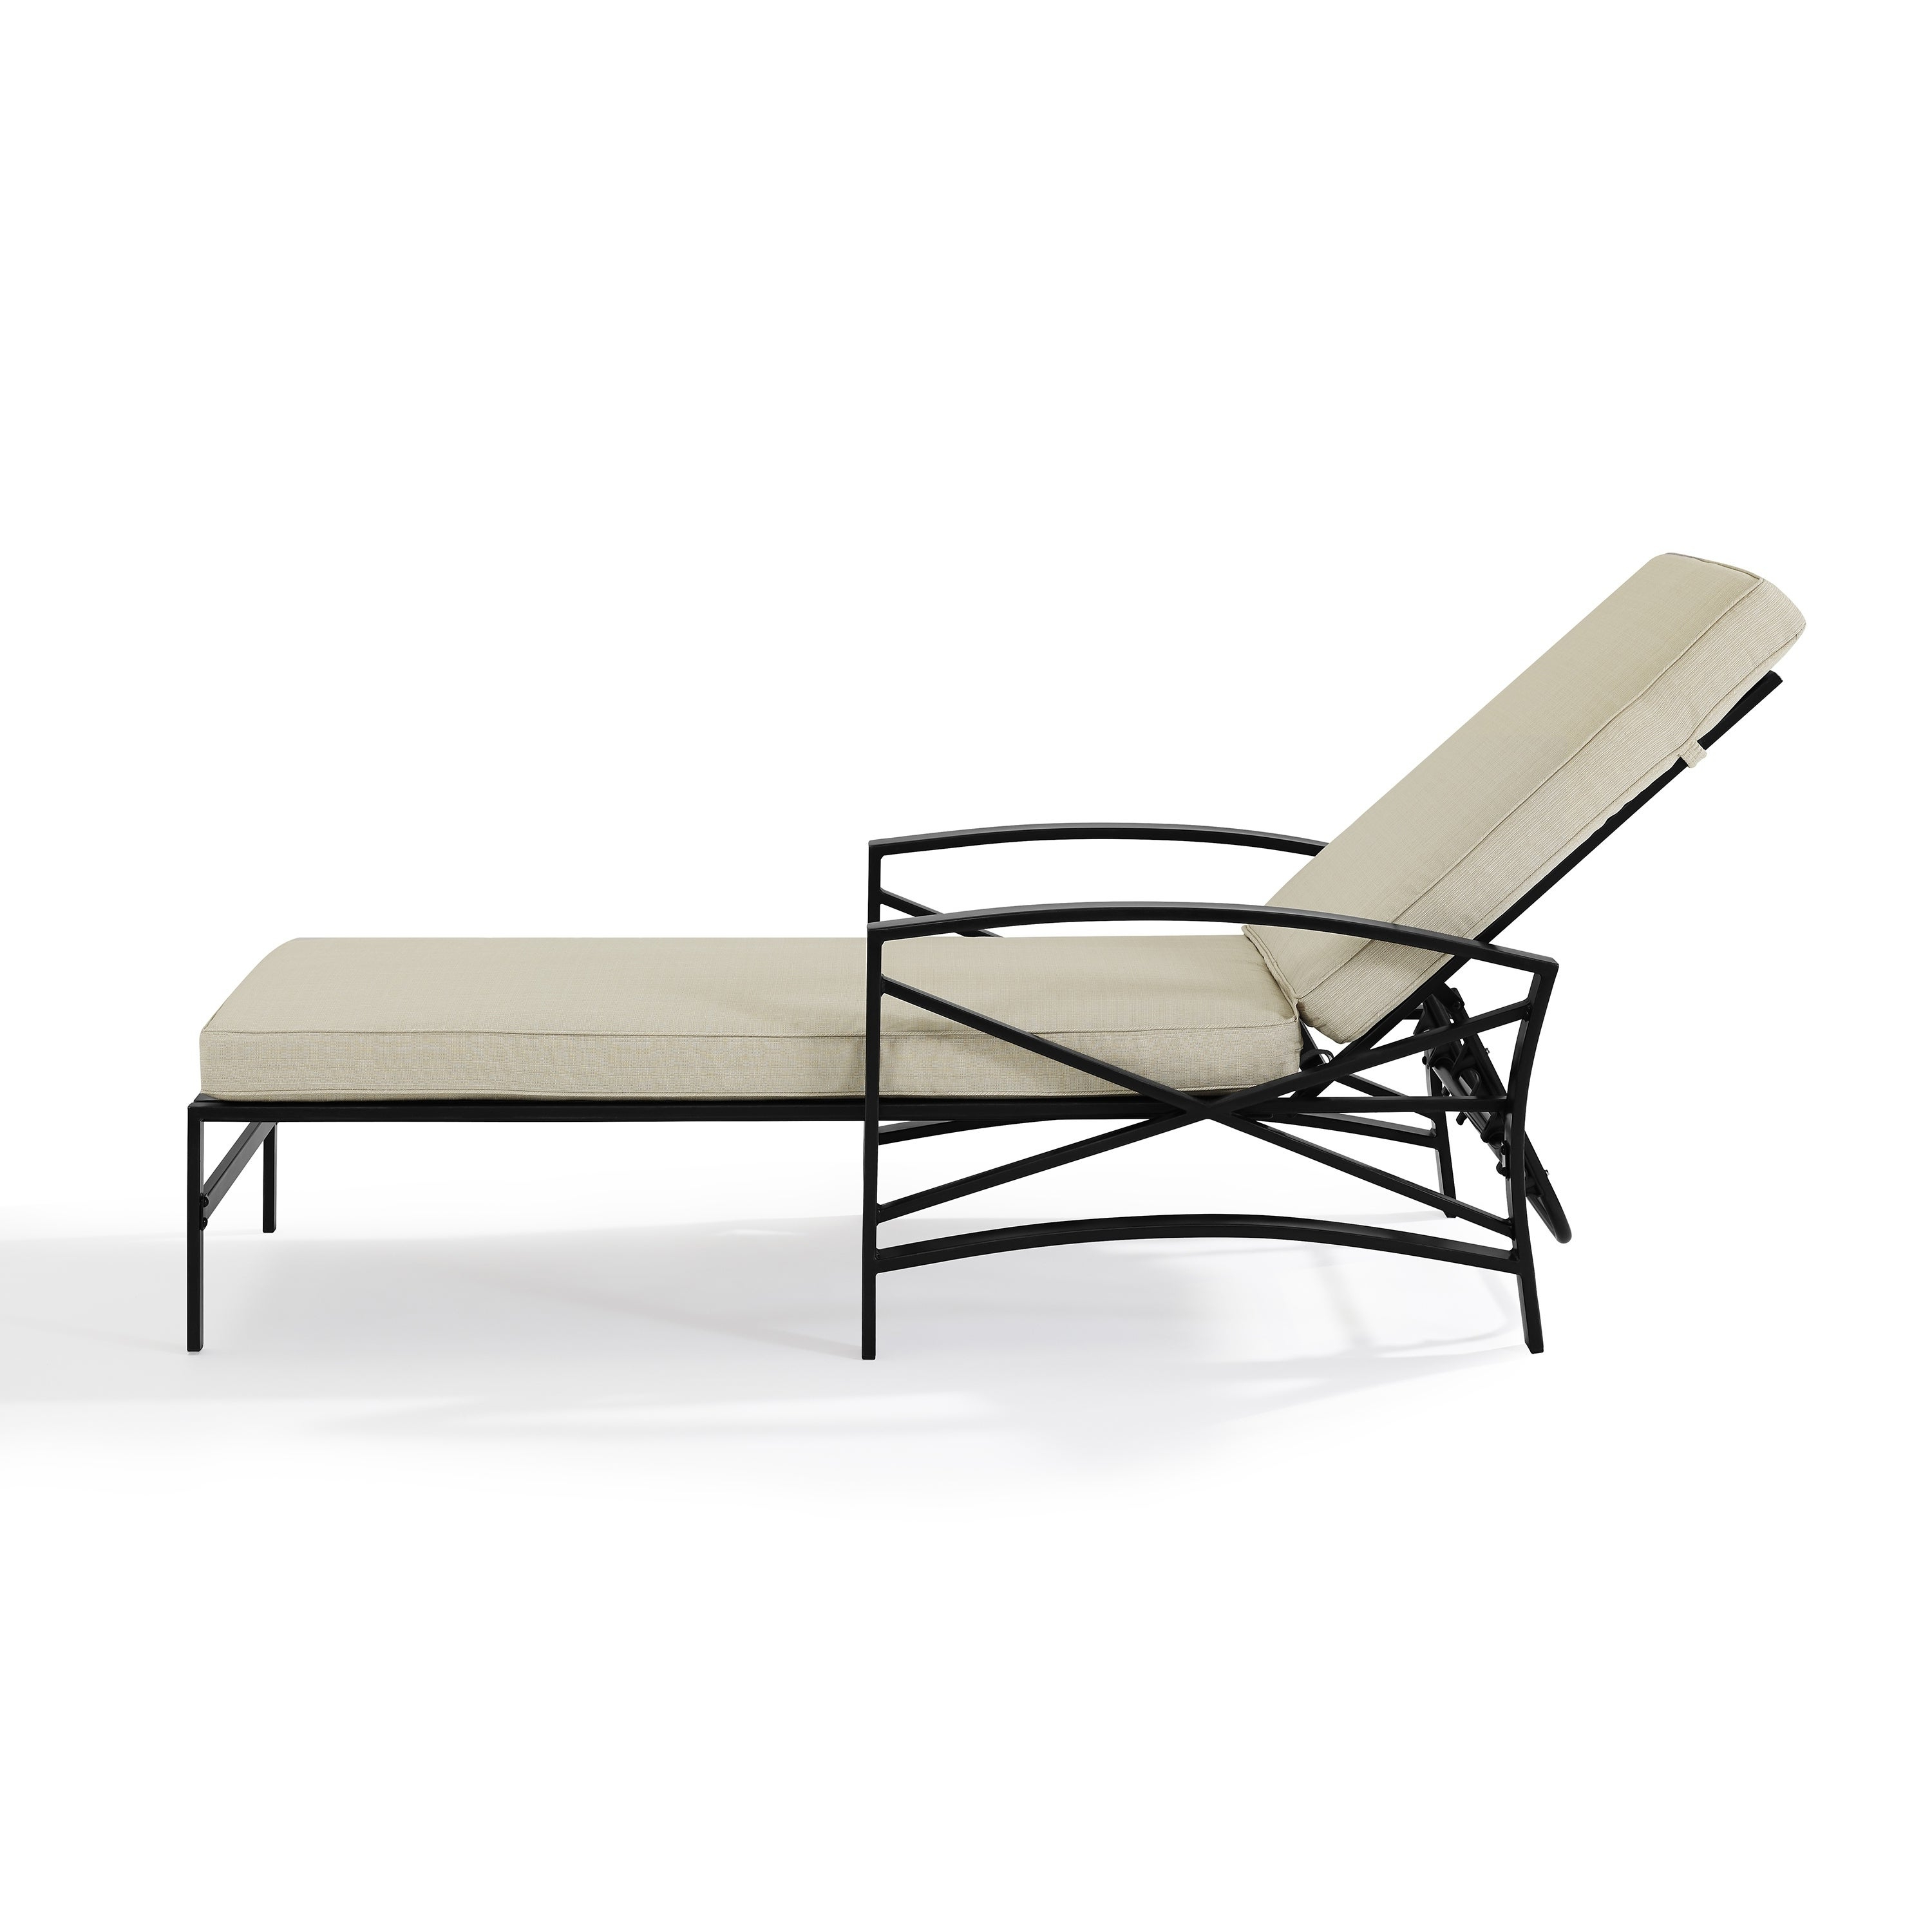 Well Known Chaise Lounge Chairs In Bronze With Oatmeal Cushions For Kaplan Chaise Lounge Chair In Bronze With Oatmeal Cushion (Gallery 2 of 25)